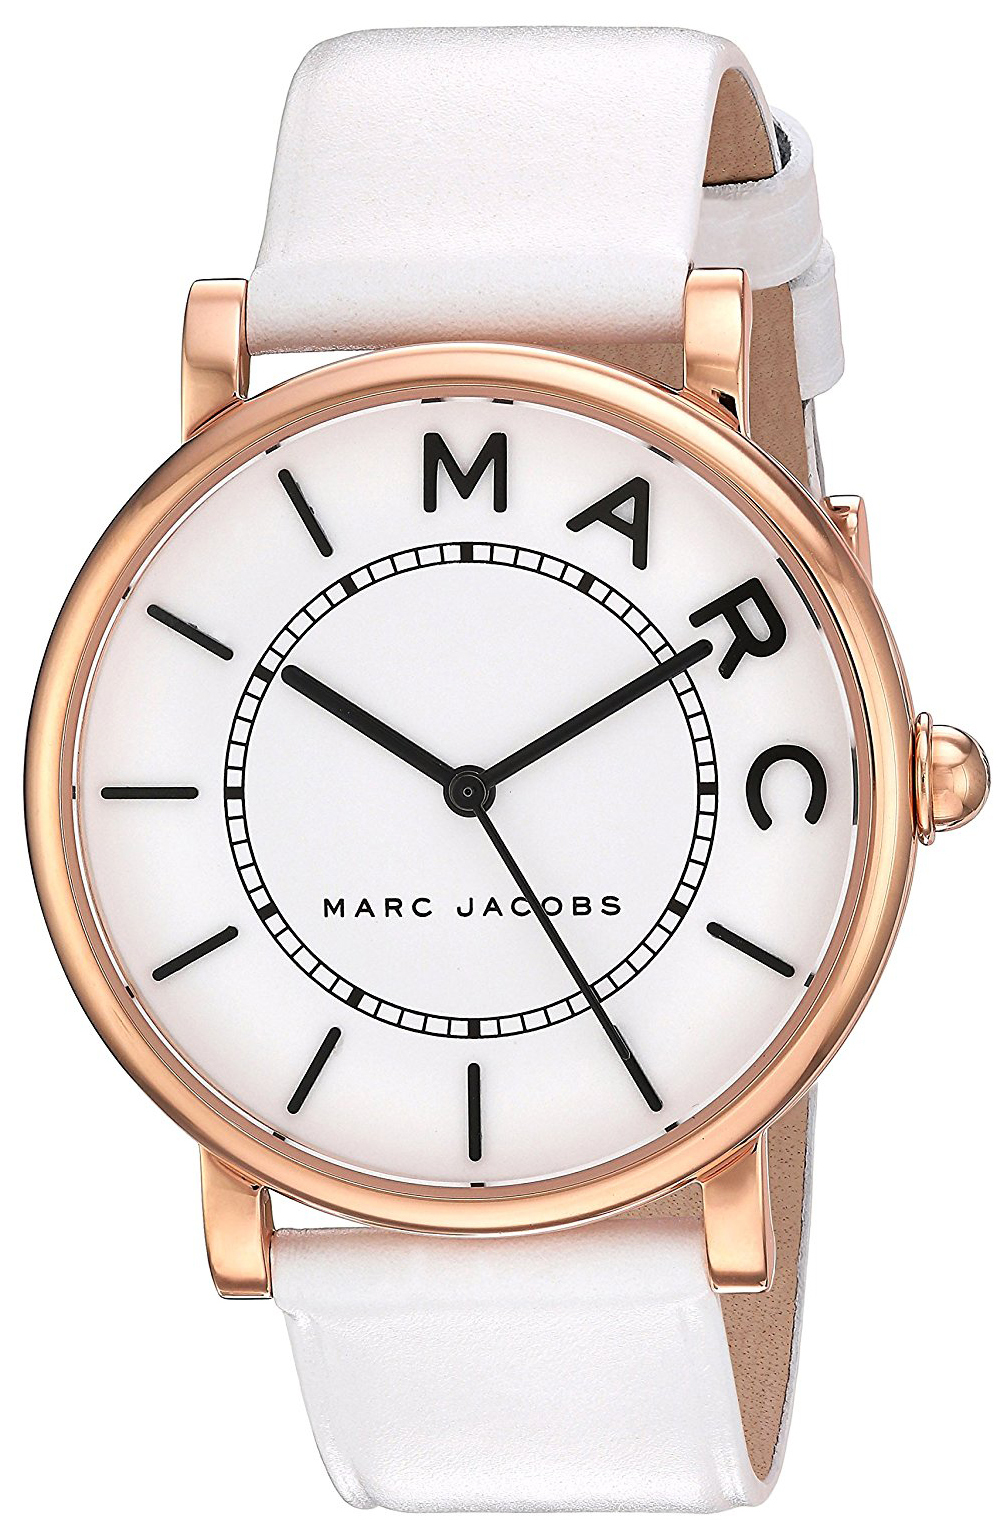 Marc by Marc Jacobs 99999 Damklocka MJ1561 Vit/Läder Ø36 mm - Marc by Marc Jacobs